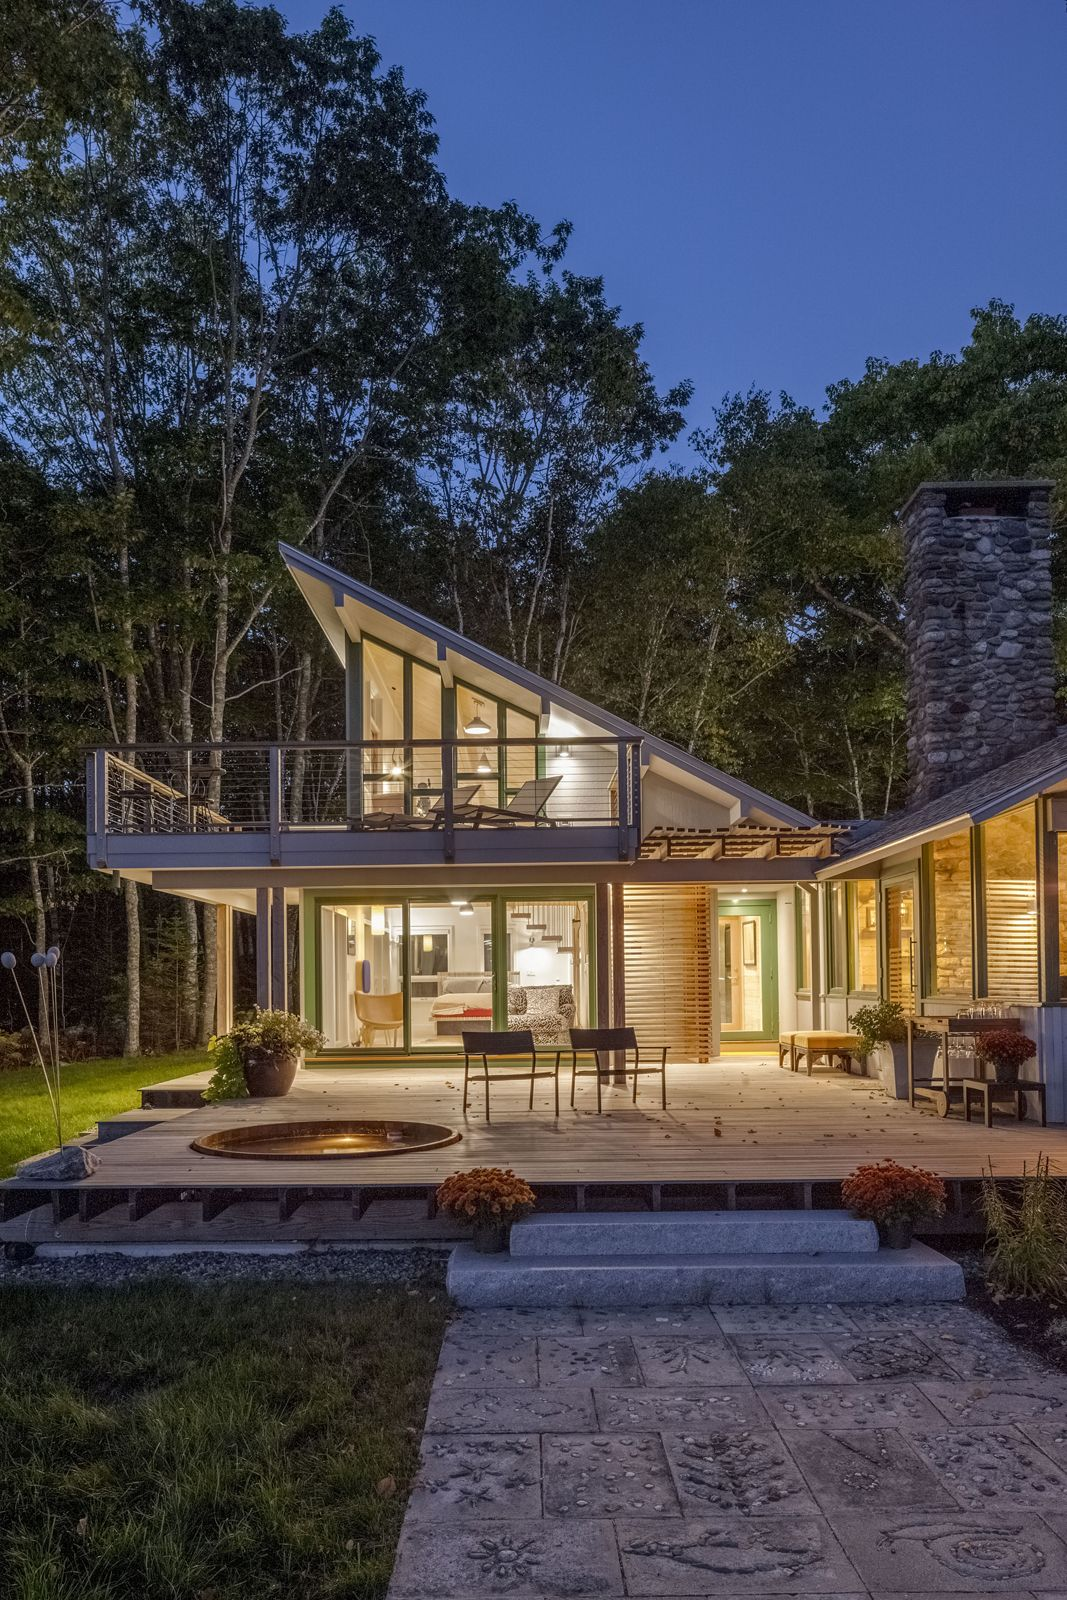 The Marvin Architects Challenge Best In Show Winner Is Radiant At Night William M Hanley Used Marvin W Small House Architects House Design Architecture House